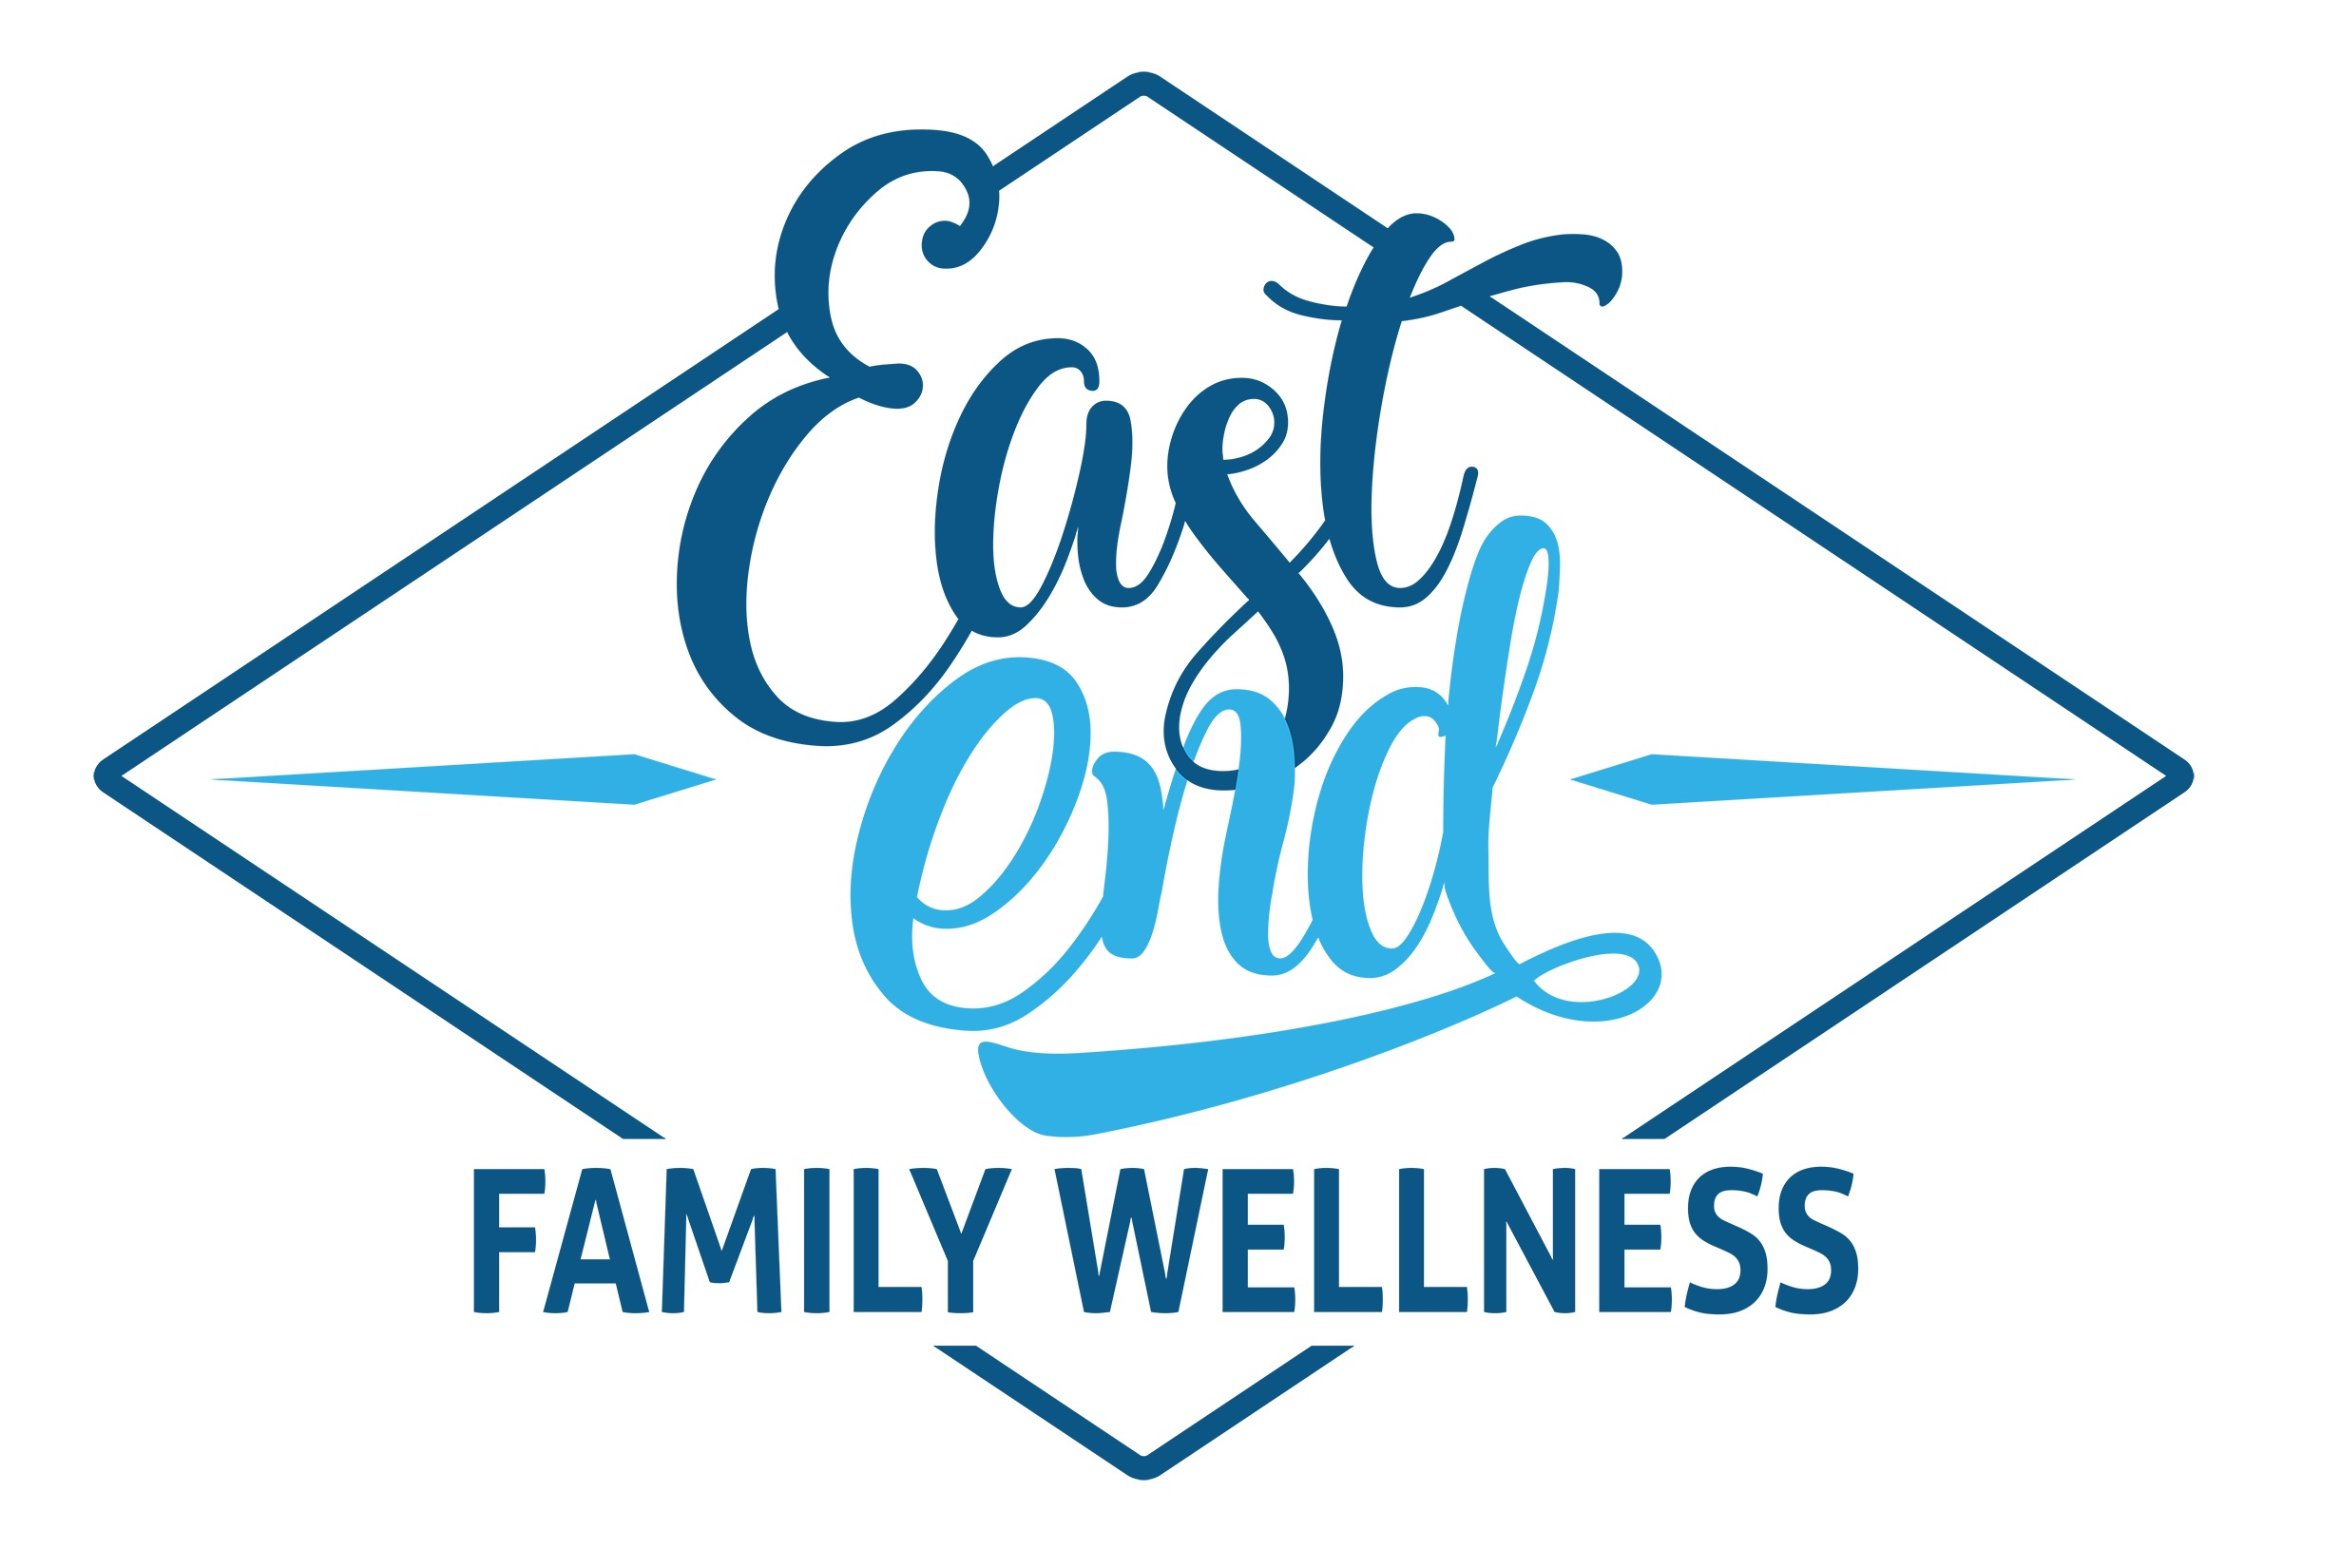 East end Family Wellness